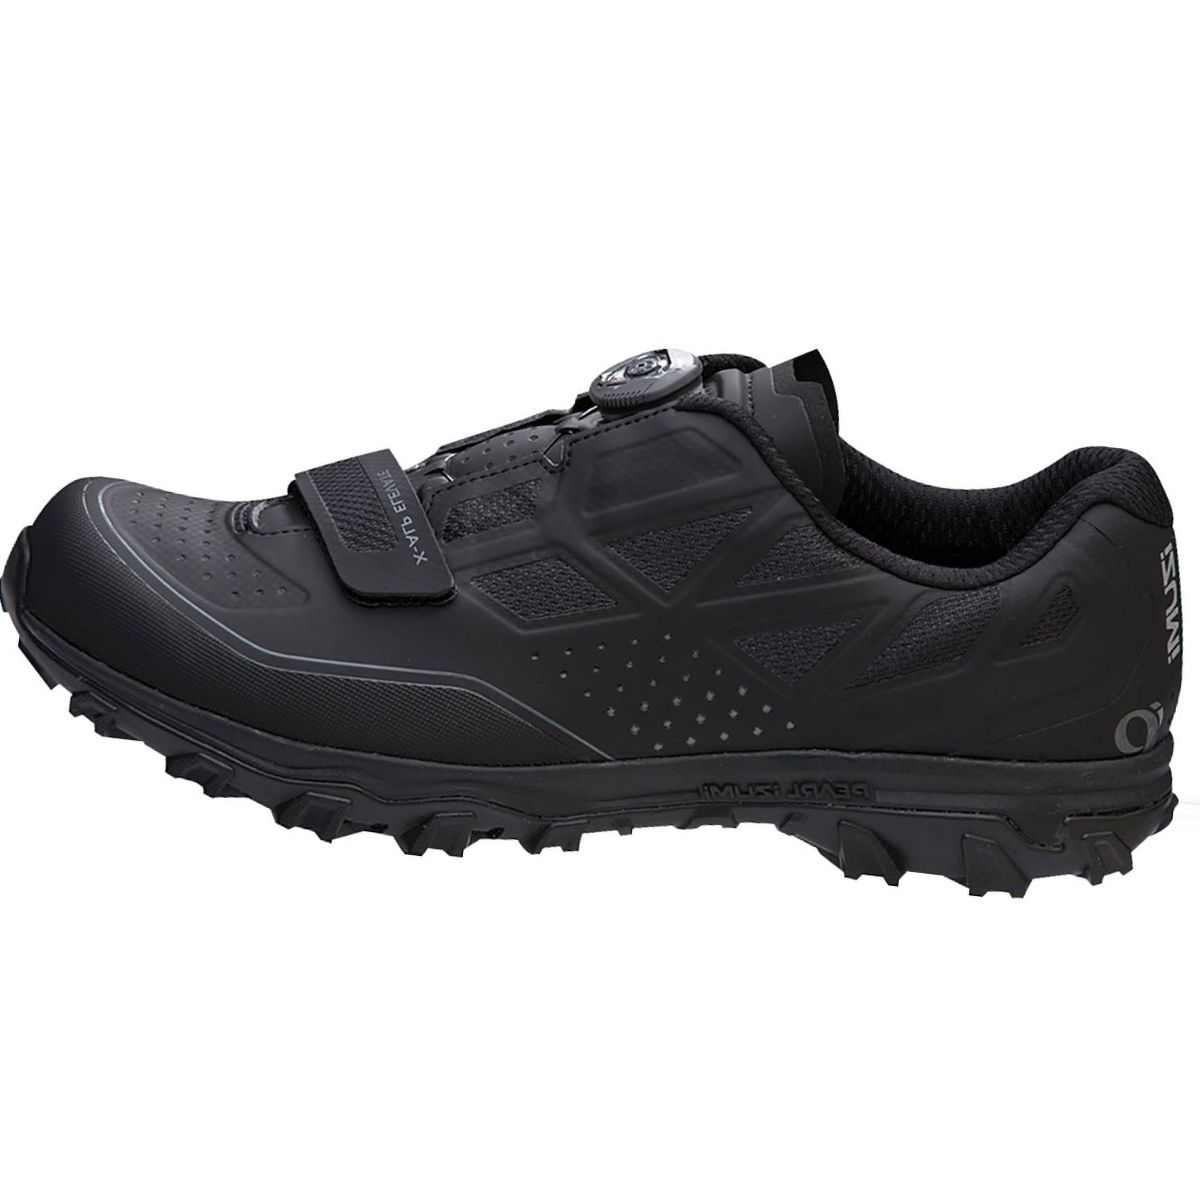 Pearl Izumi X-ALP Elevate Cycling Shoe - Men's